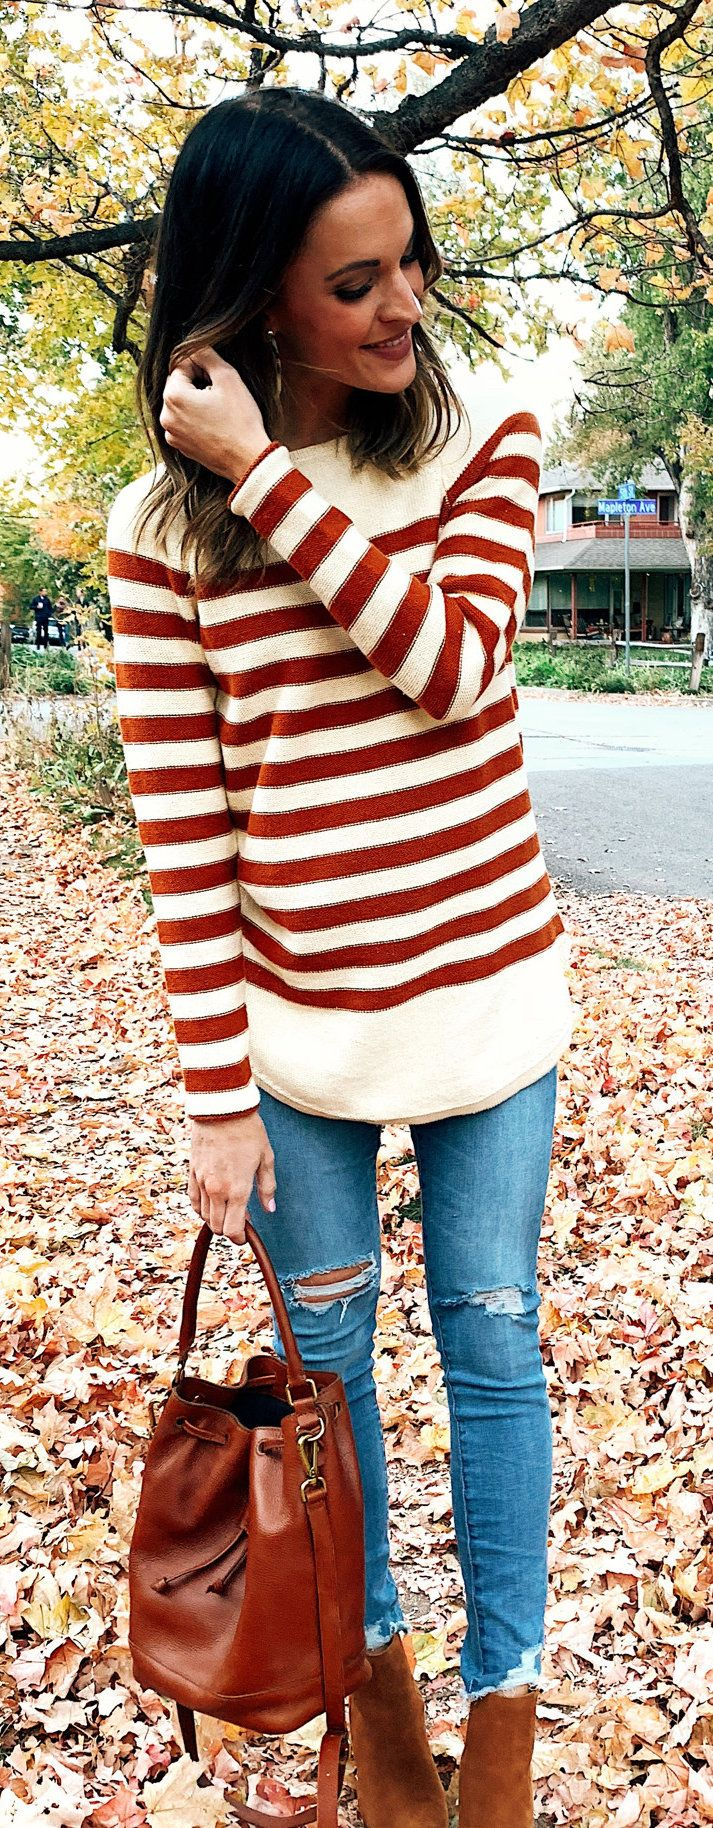 red and gray striped sweater and distressed blue-washed jeans